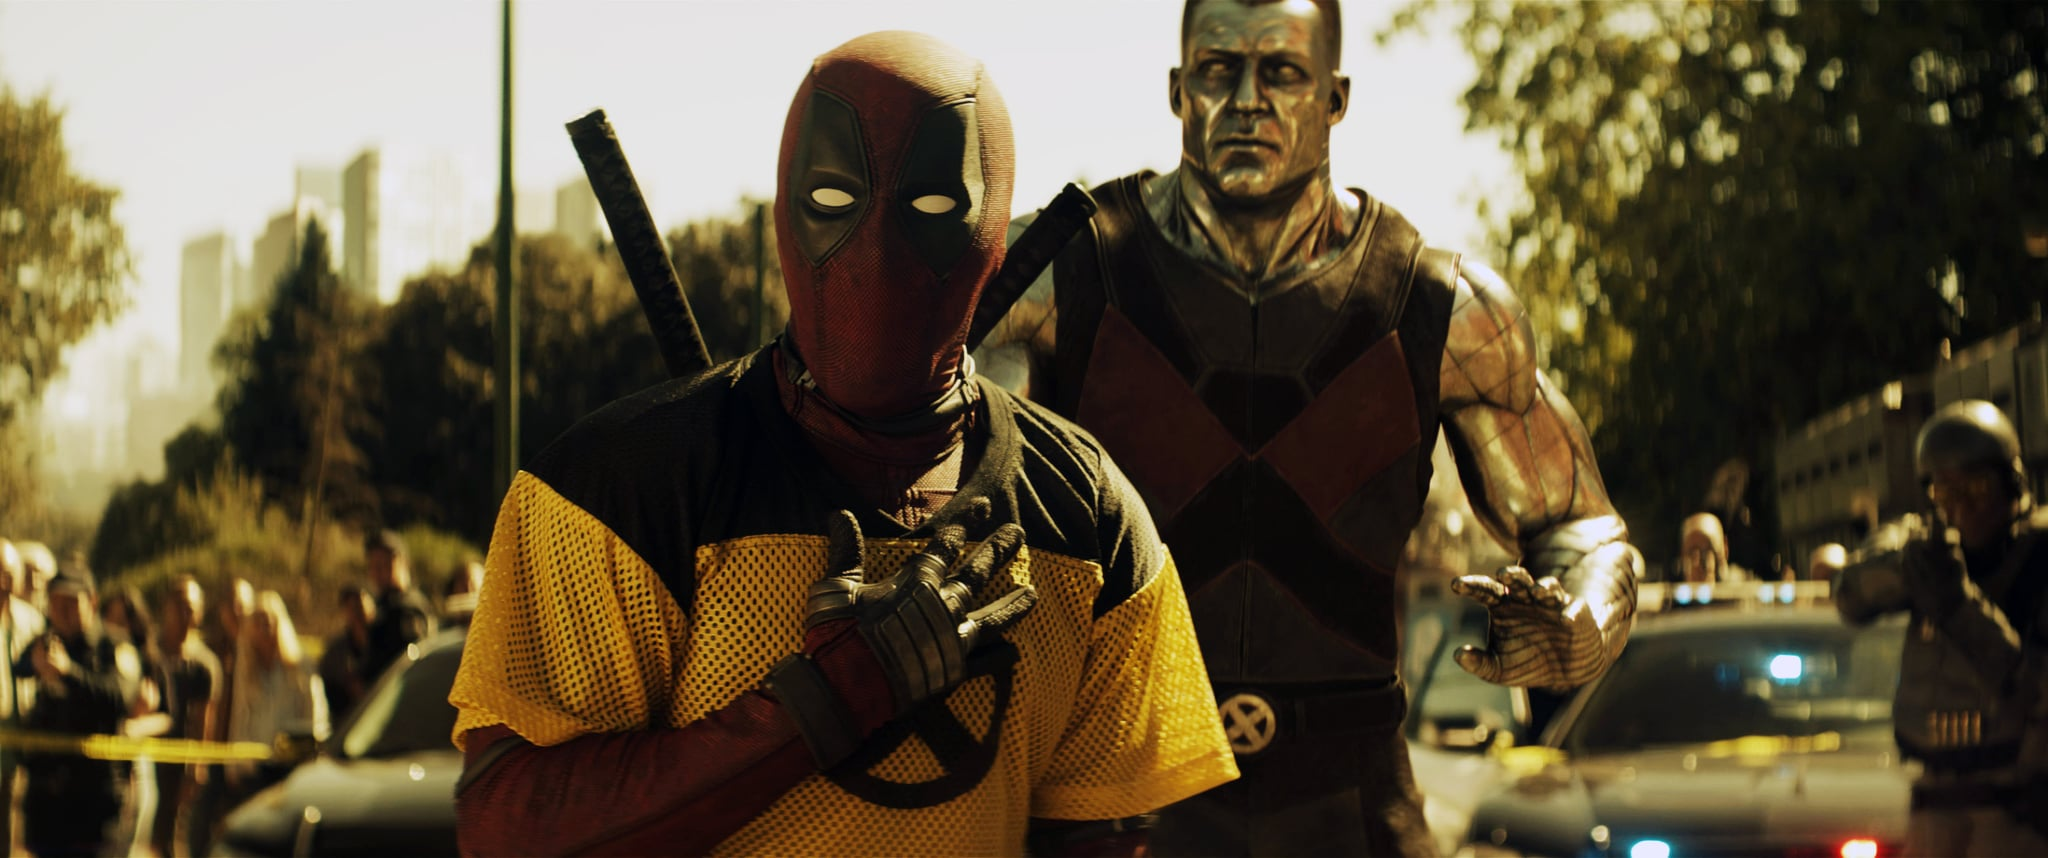 DEADPOOL 2, l-r: Ryan Reynolds as Deadpool, Stefan Kapicic as Colossus, 2018. TM & Copyright  20th Century Fox Film Corp. All rights reserved./courtesy Everett Collection